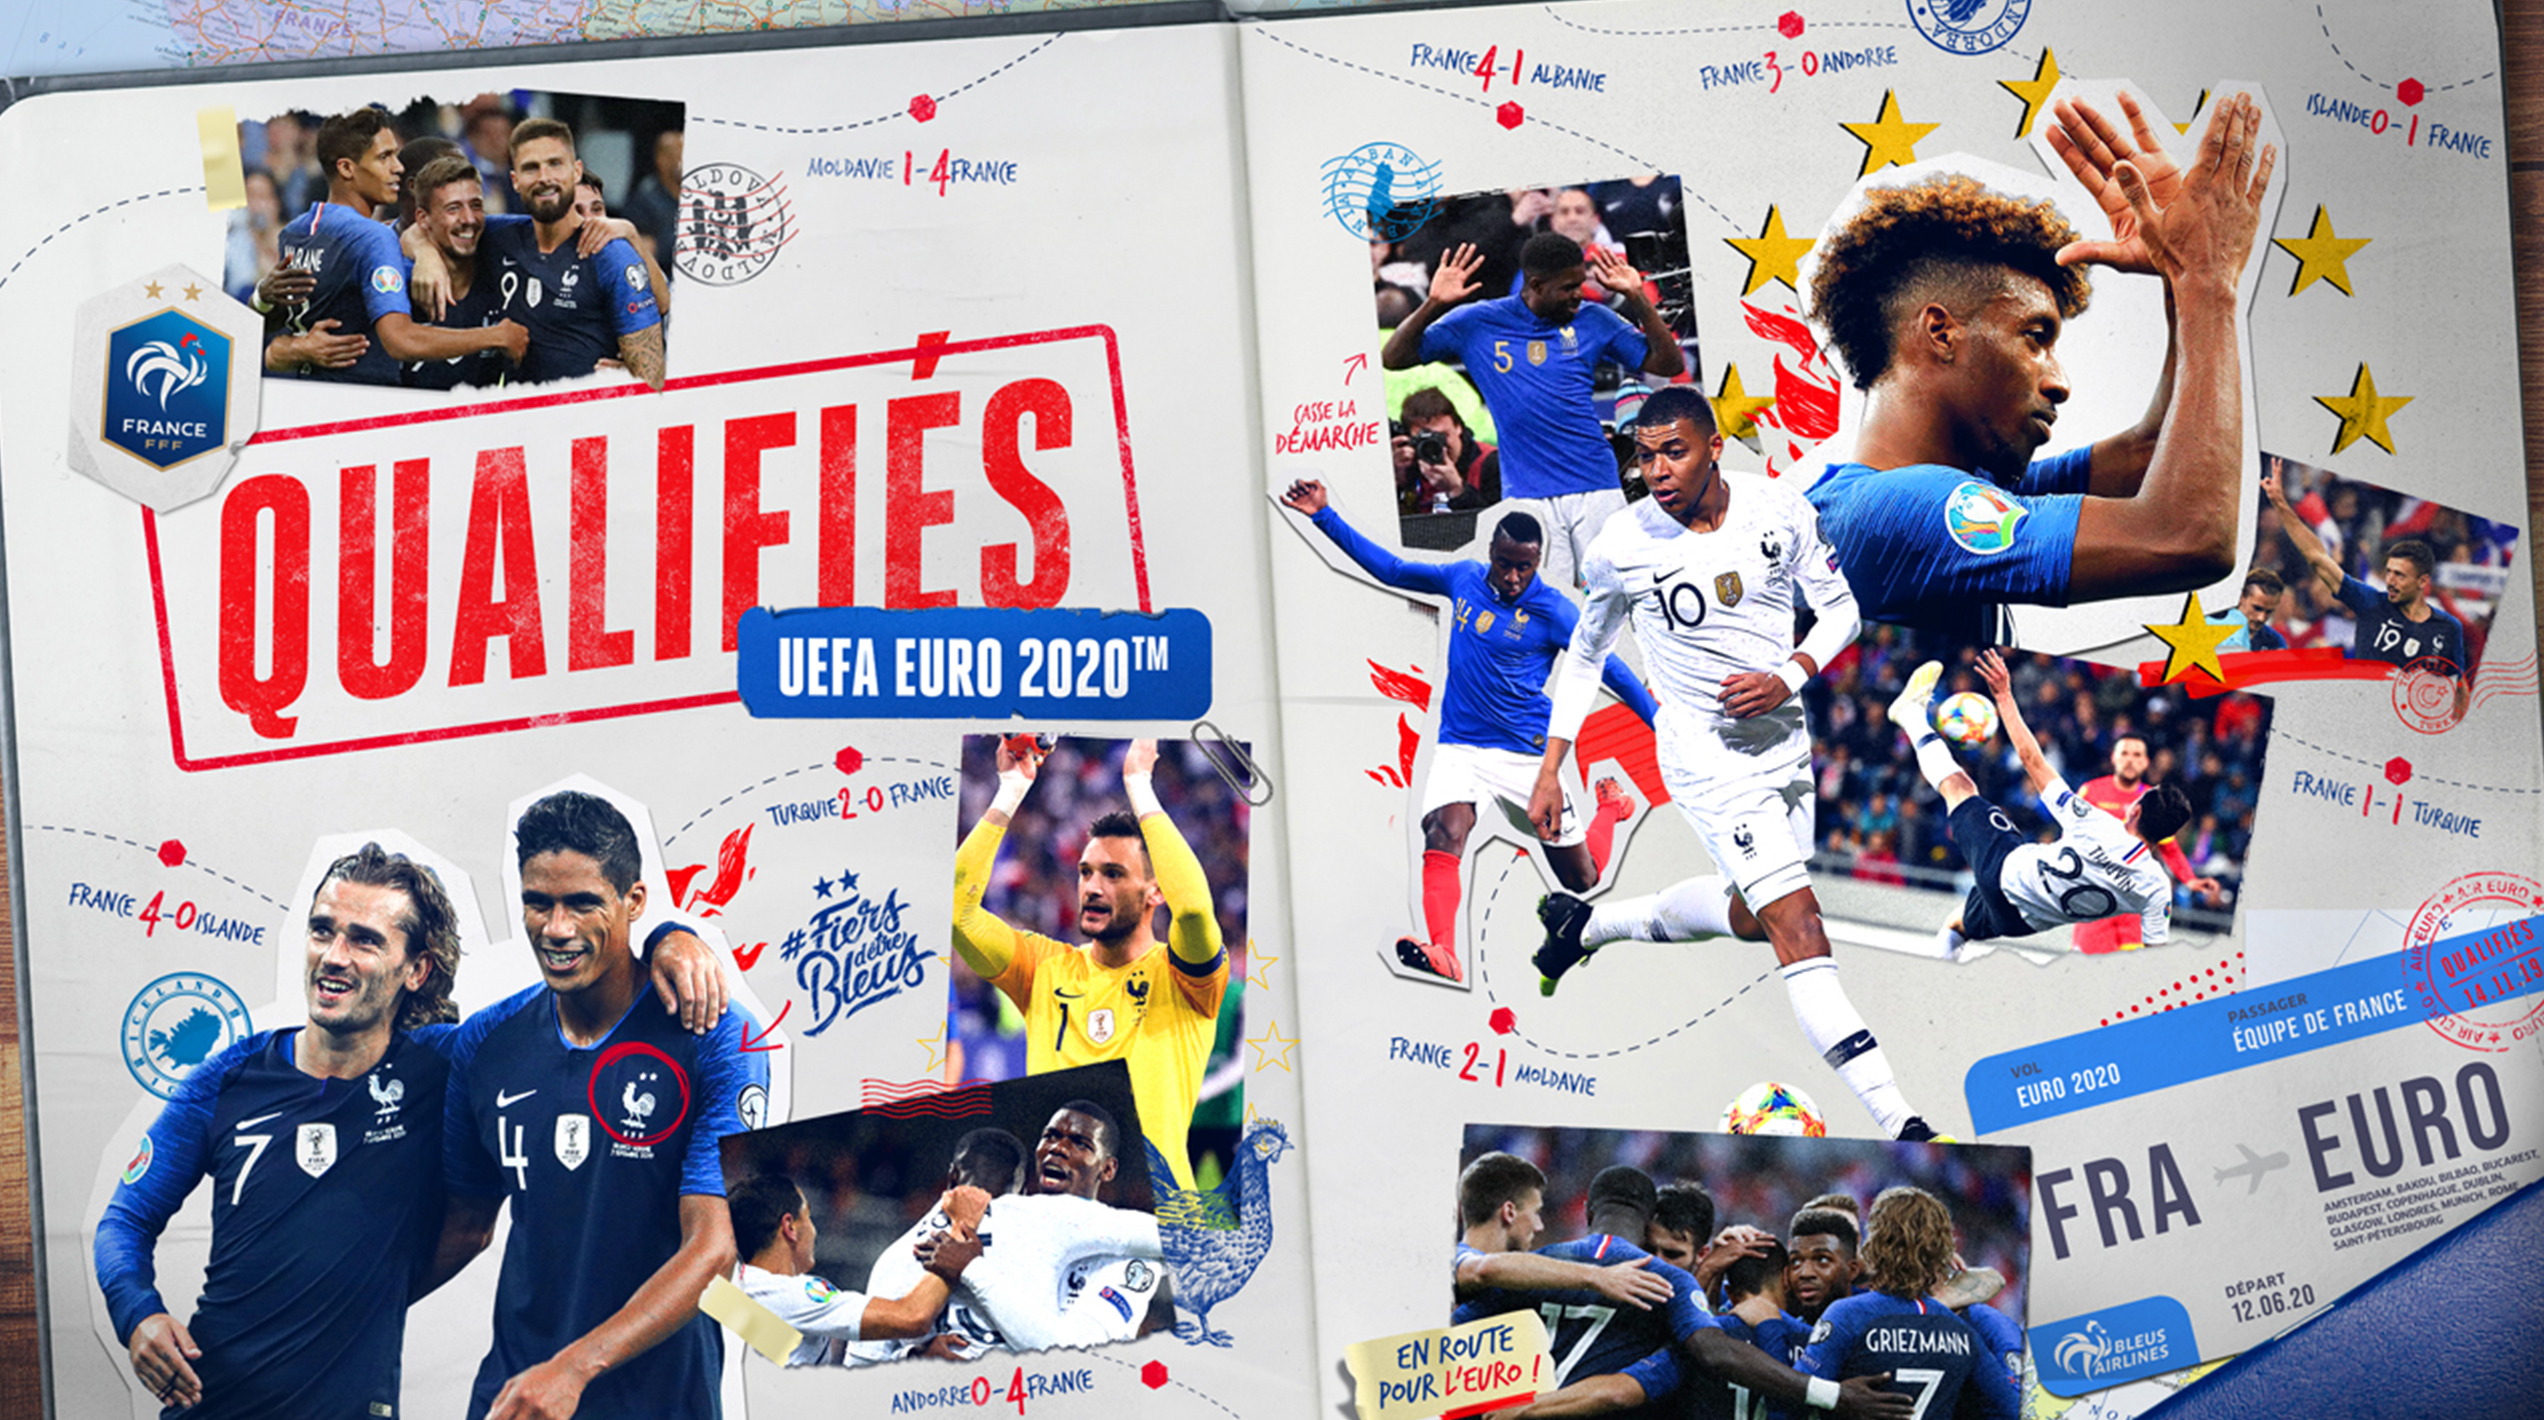 Actualite_news_Campagne_qualification_Bleus_FFF_Federation_francaise_football_french_2544x1420